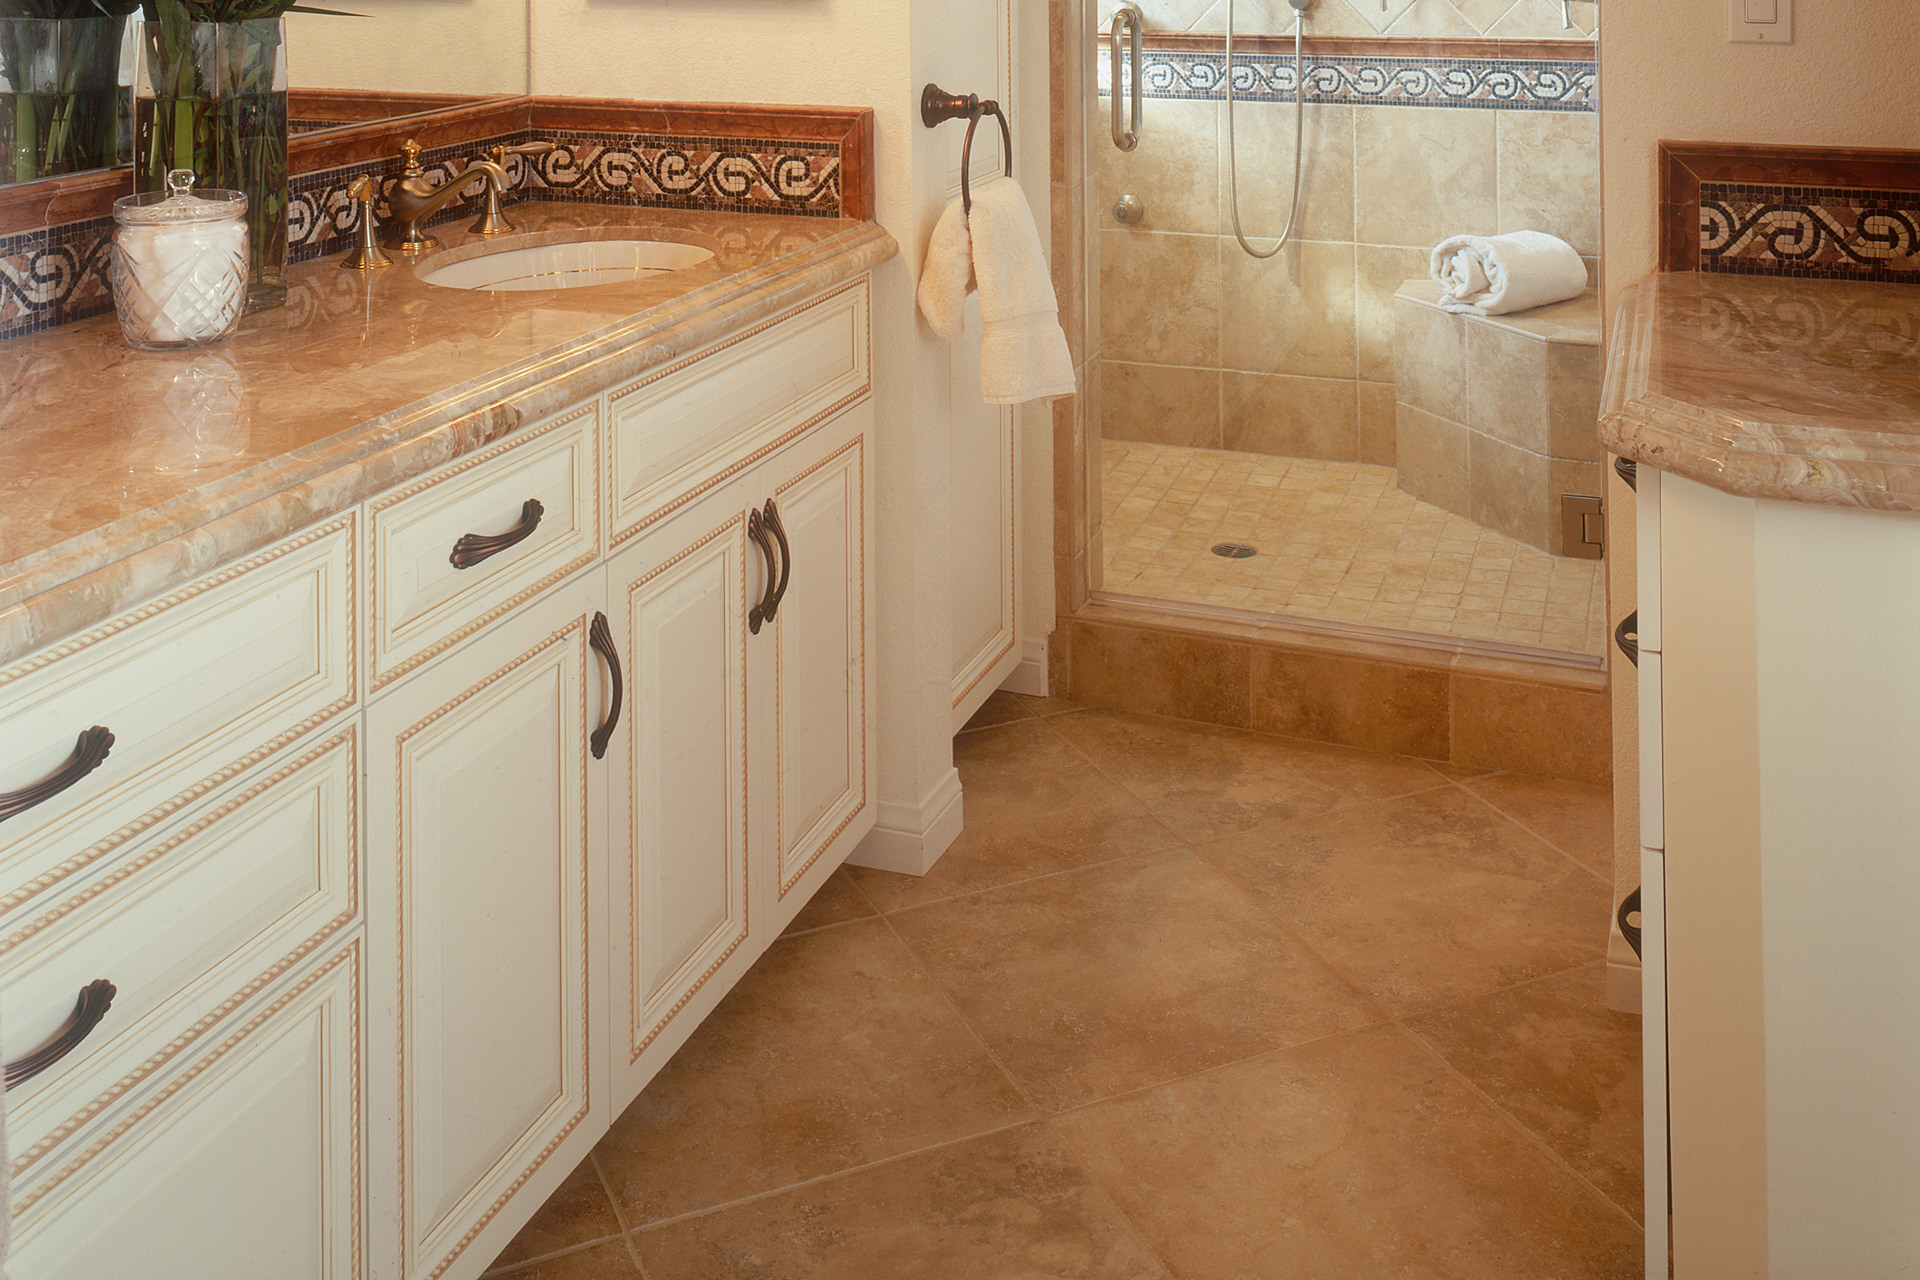 Custom bathroom cabinets curved face sinks two level vessel sinks full overlay bathroom cabinets painted with glaze rope molding on doors dailygadgetfo Gallery